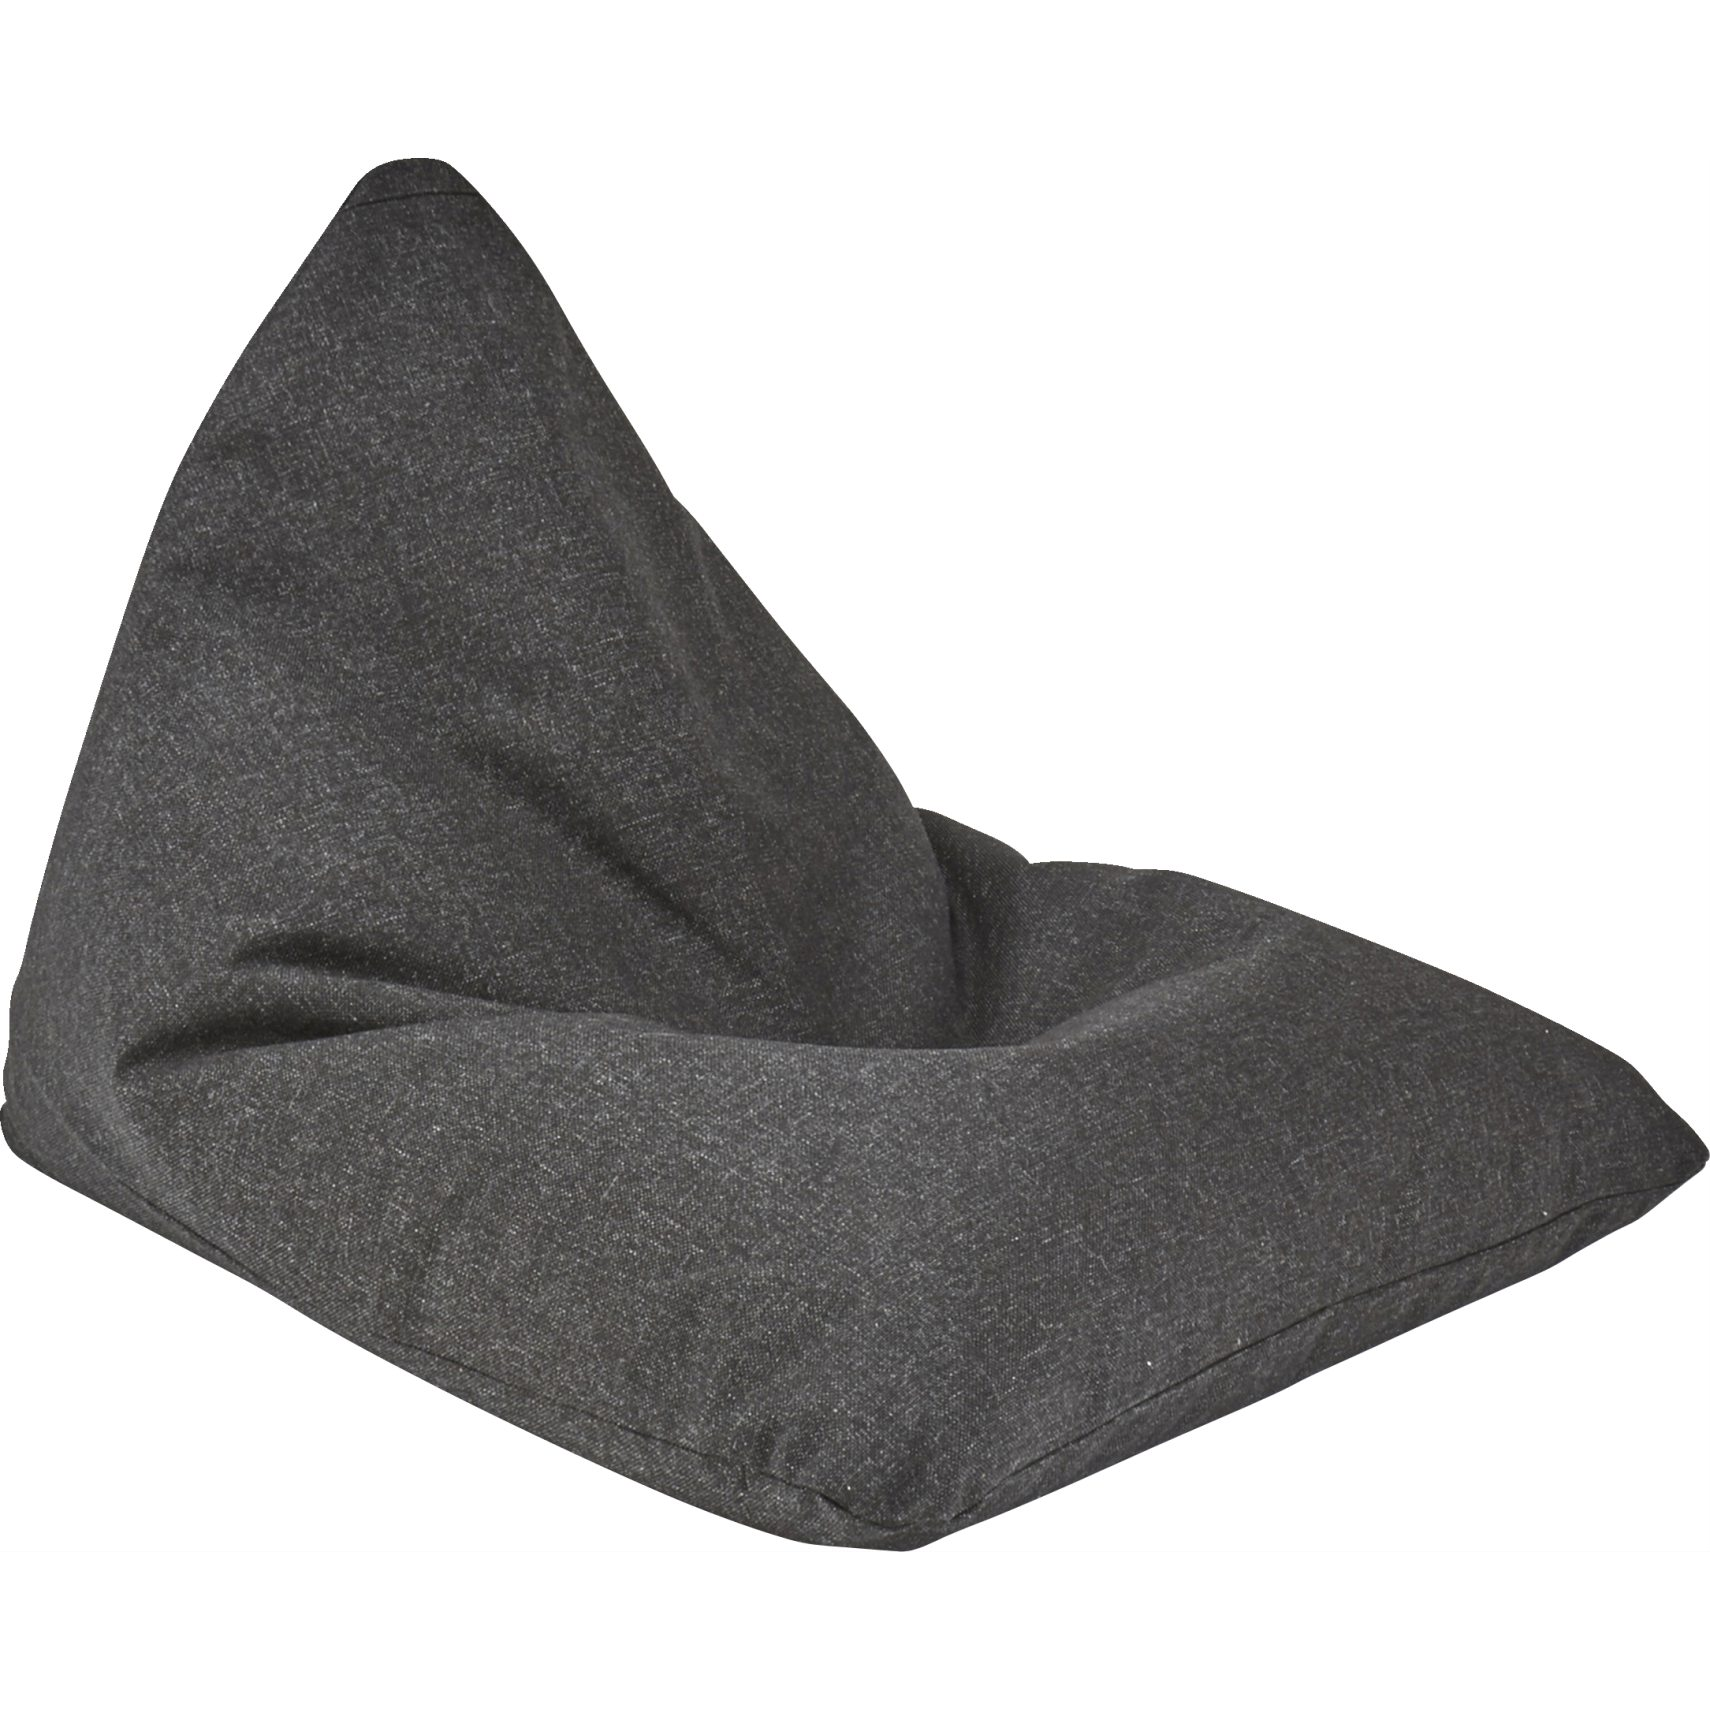 Innovation Living - Soft Peak Sittsäck - Twist 564 Black och EPS-kulor